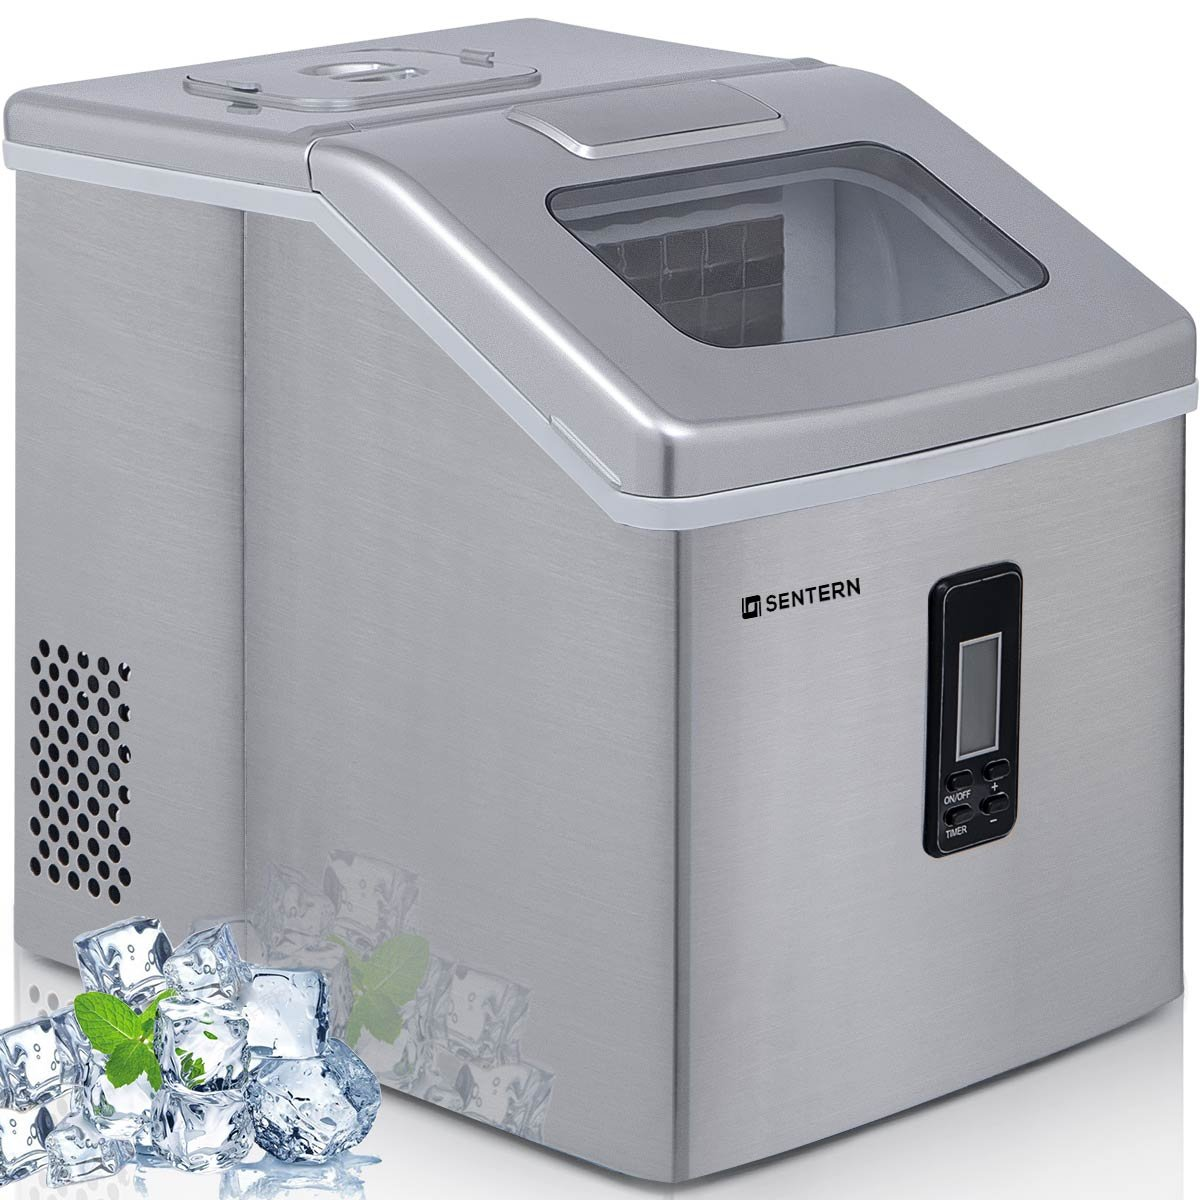 Sentern Portable Electric Clear Ice Maker Machine Stainless Steel Countertop Ice Making Machine 2.4 lbs Ice Storage 48 lbs Per Day (Silver.) Merax